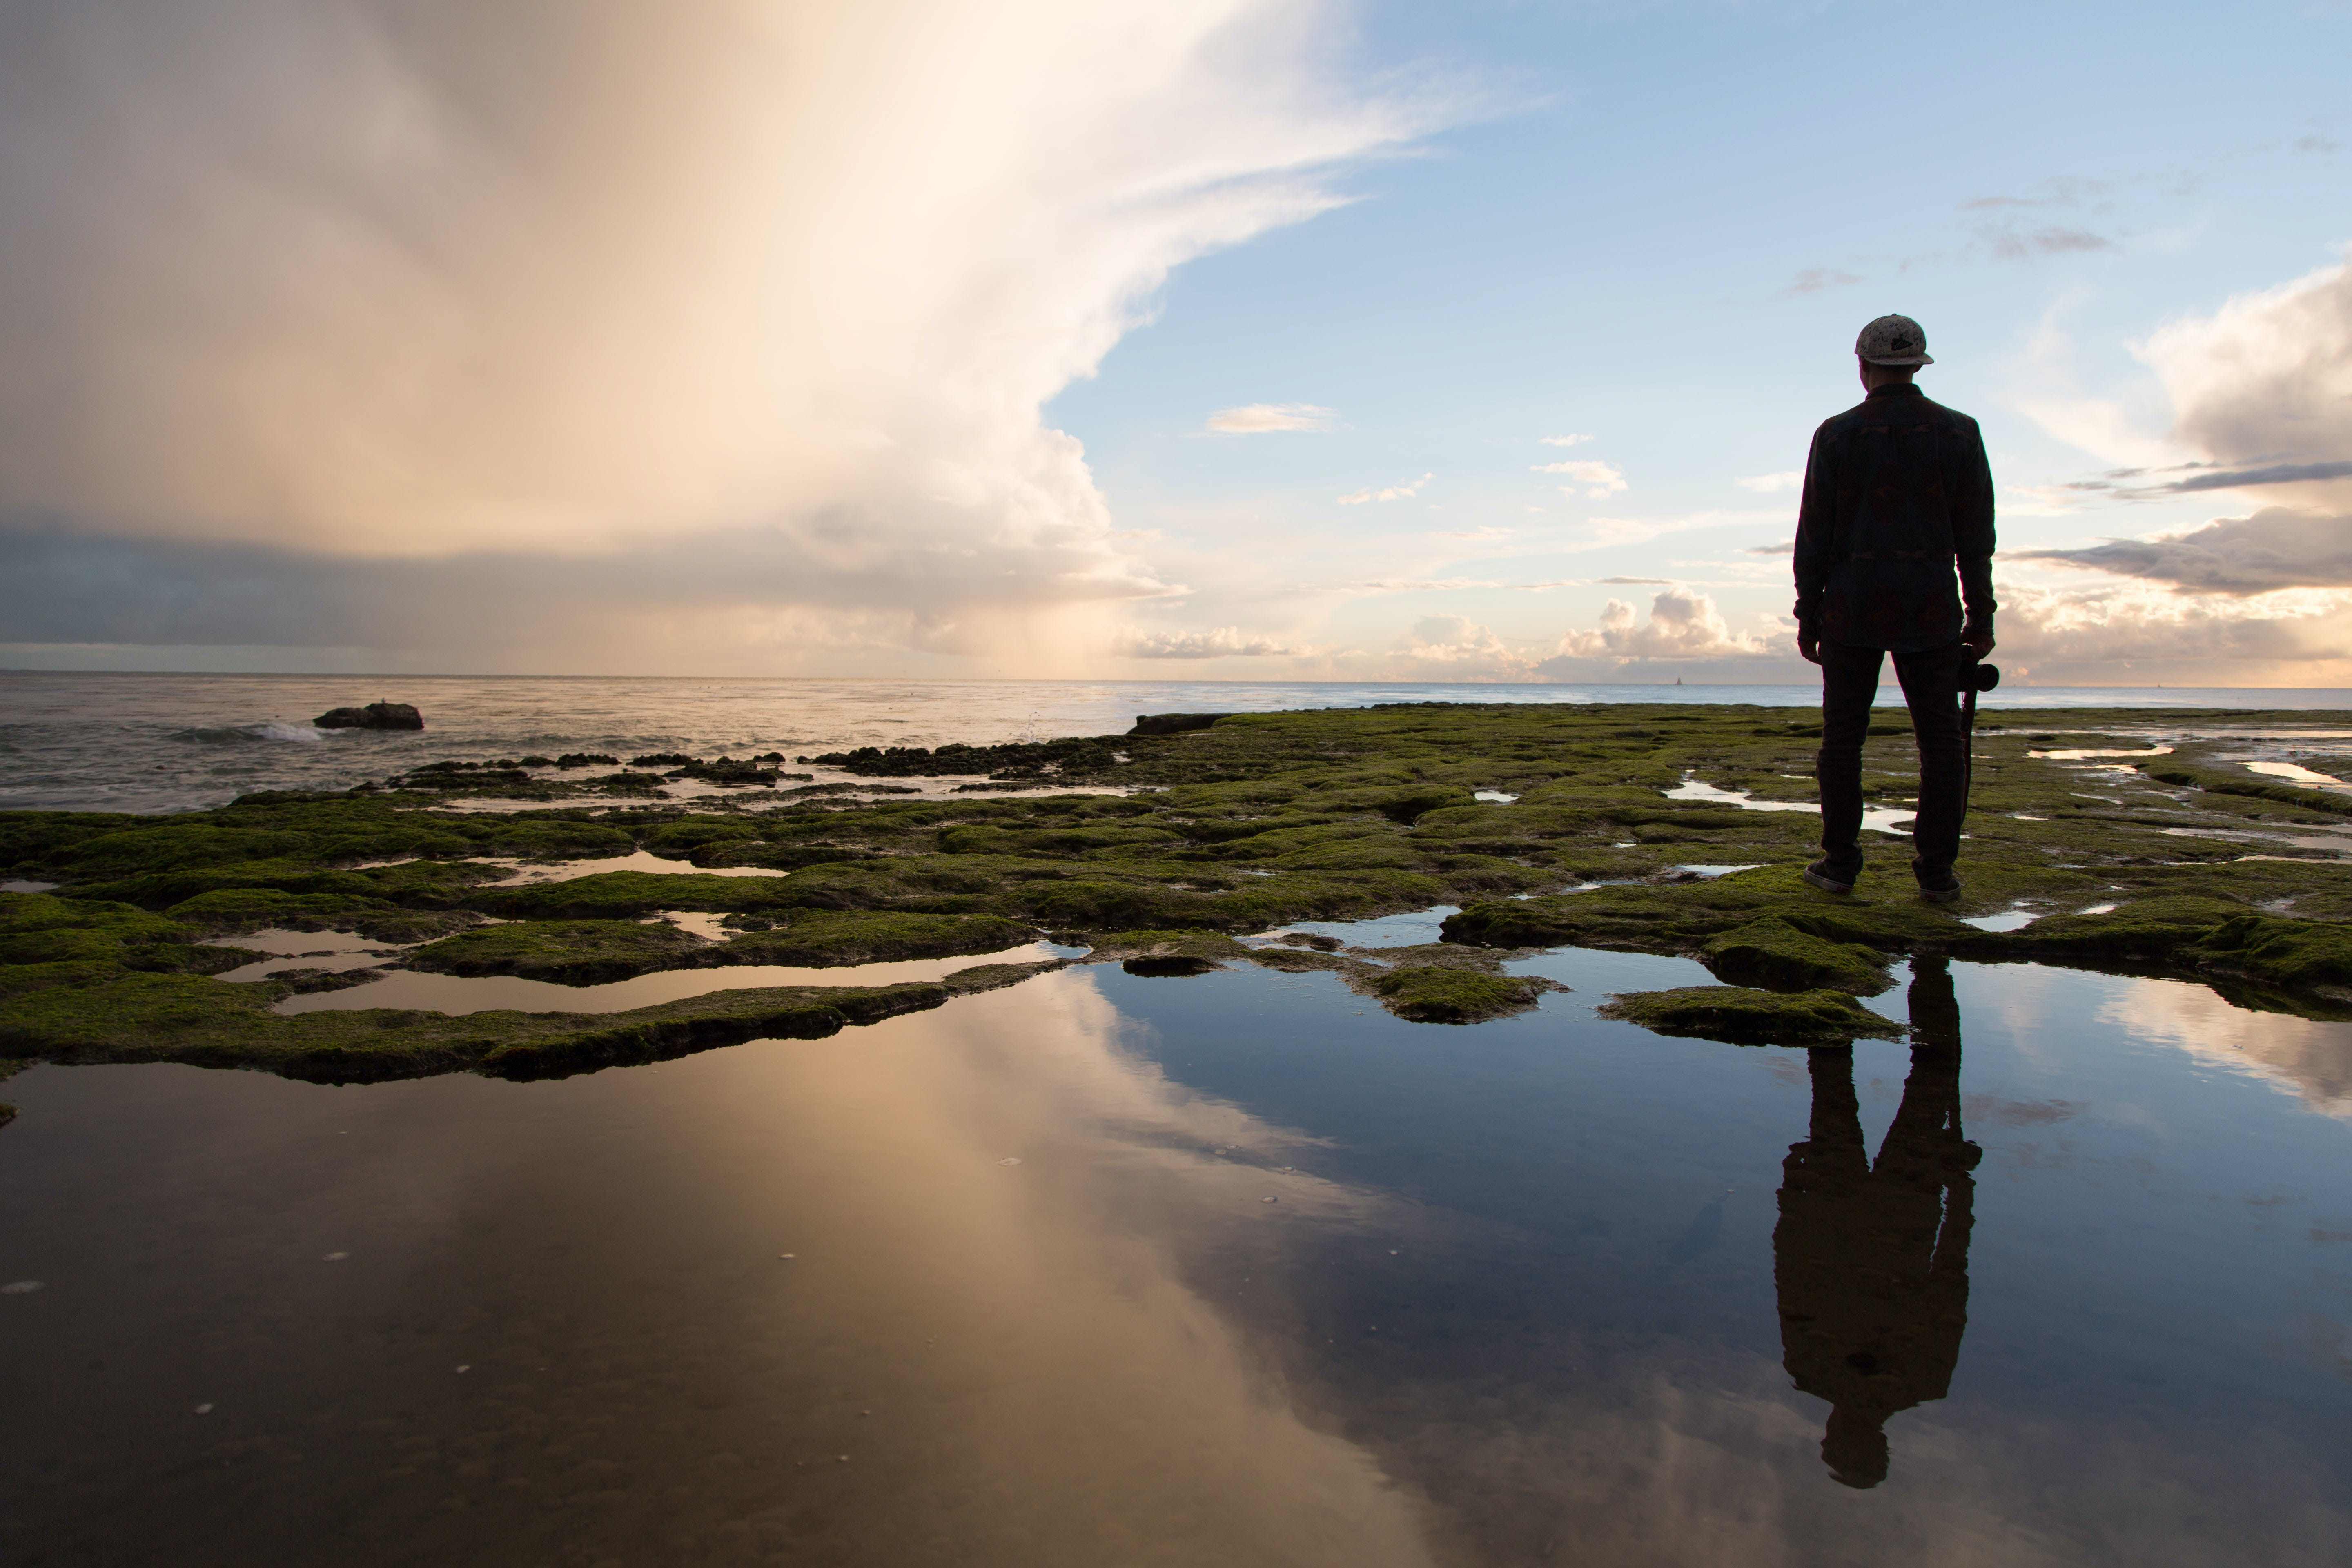 Silhouette of Man Standing on Rock Formation Near Body of Water during Golden Hour